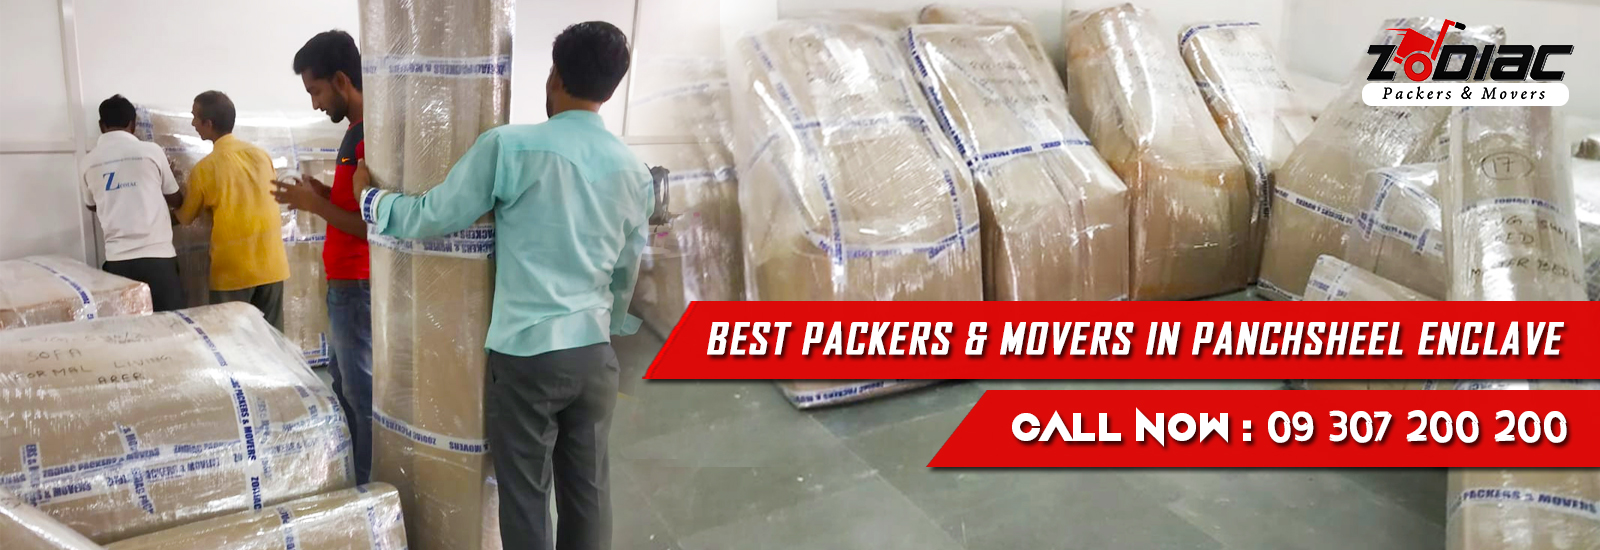 Packers and Movers in Panchsheel Enclave